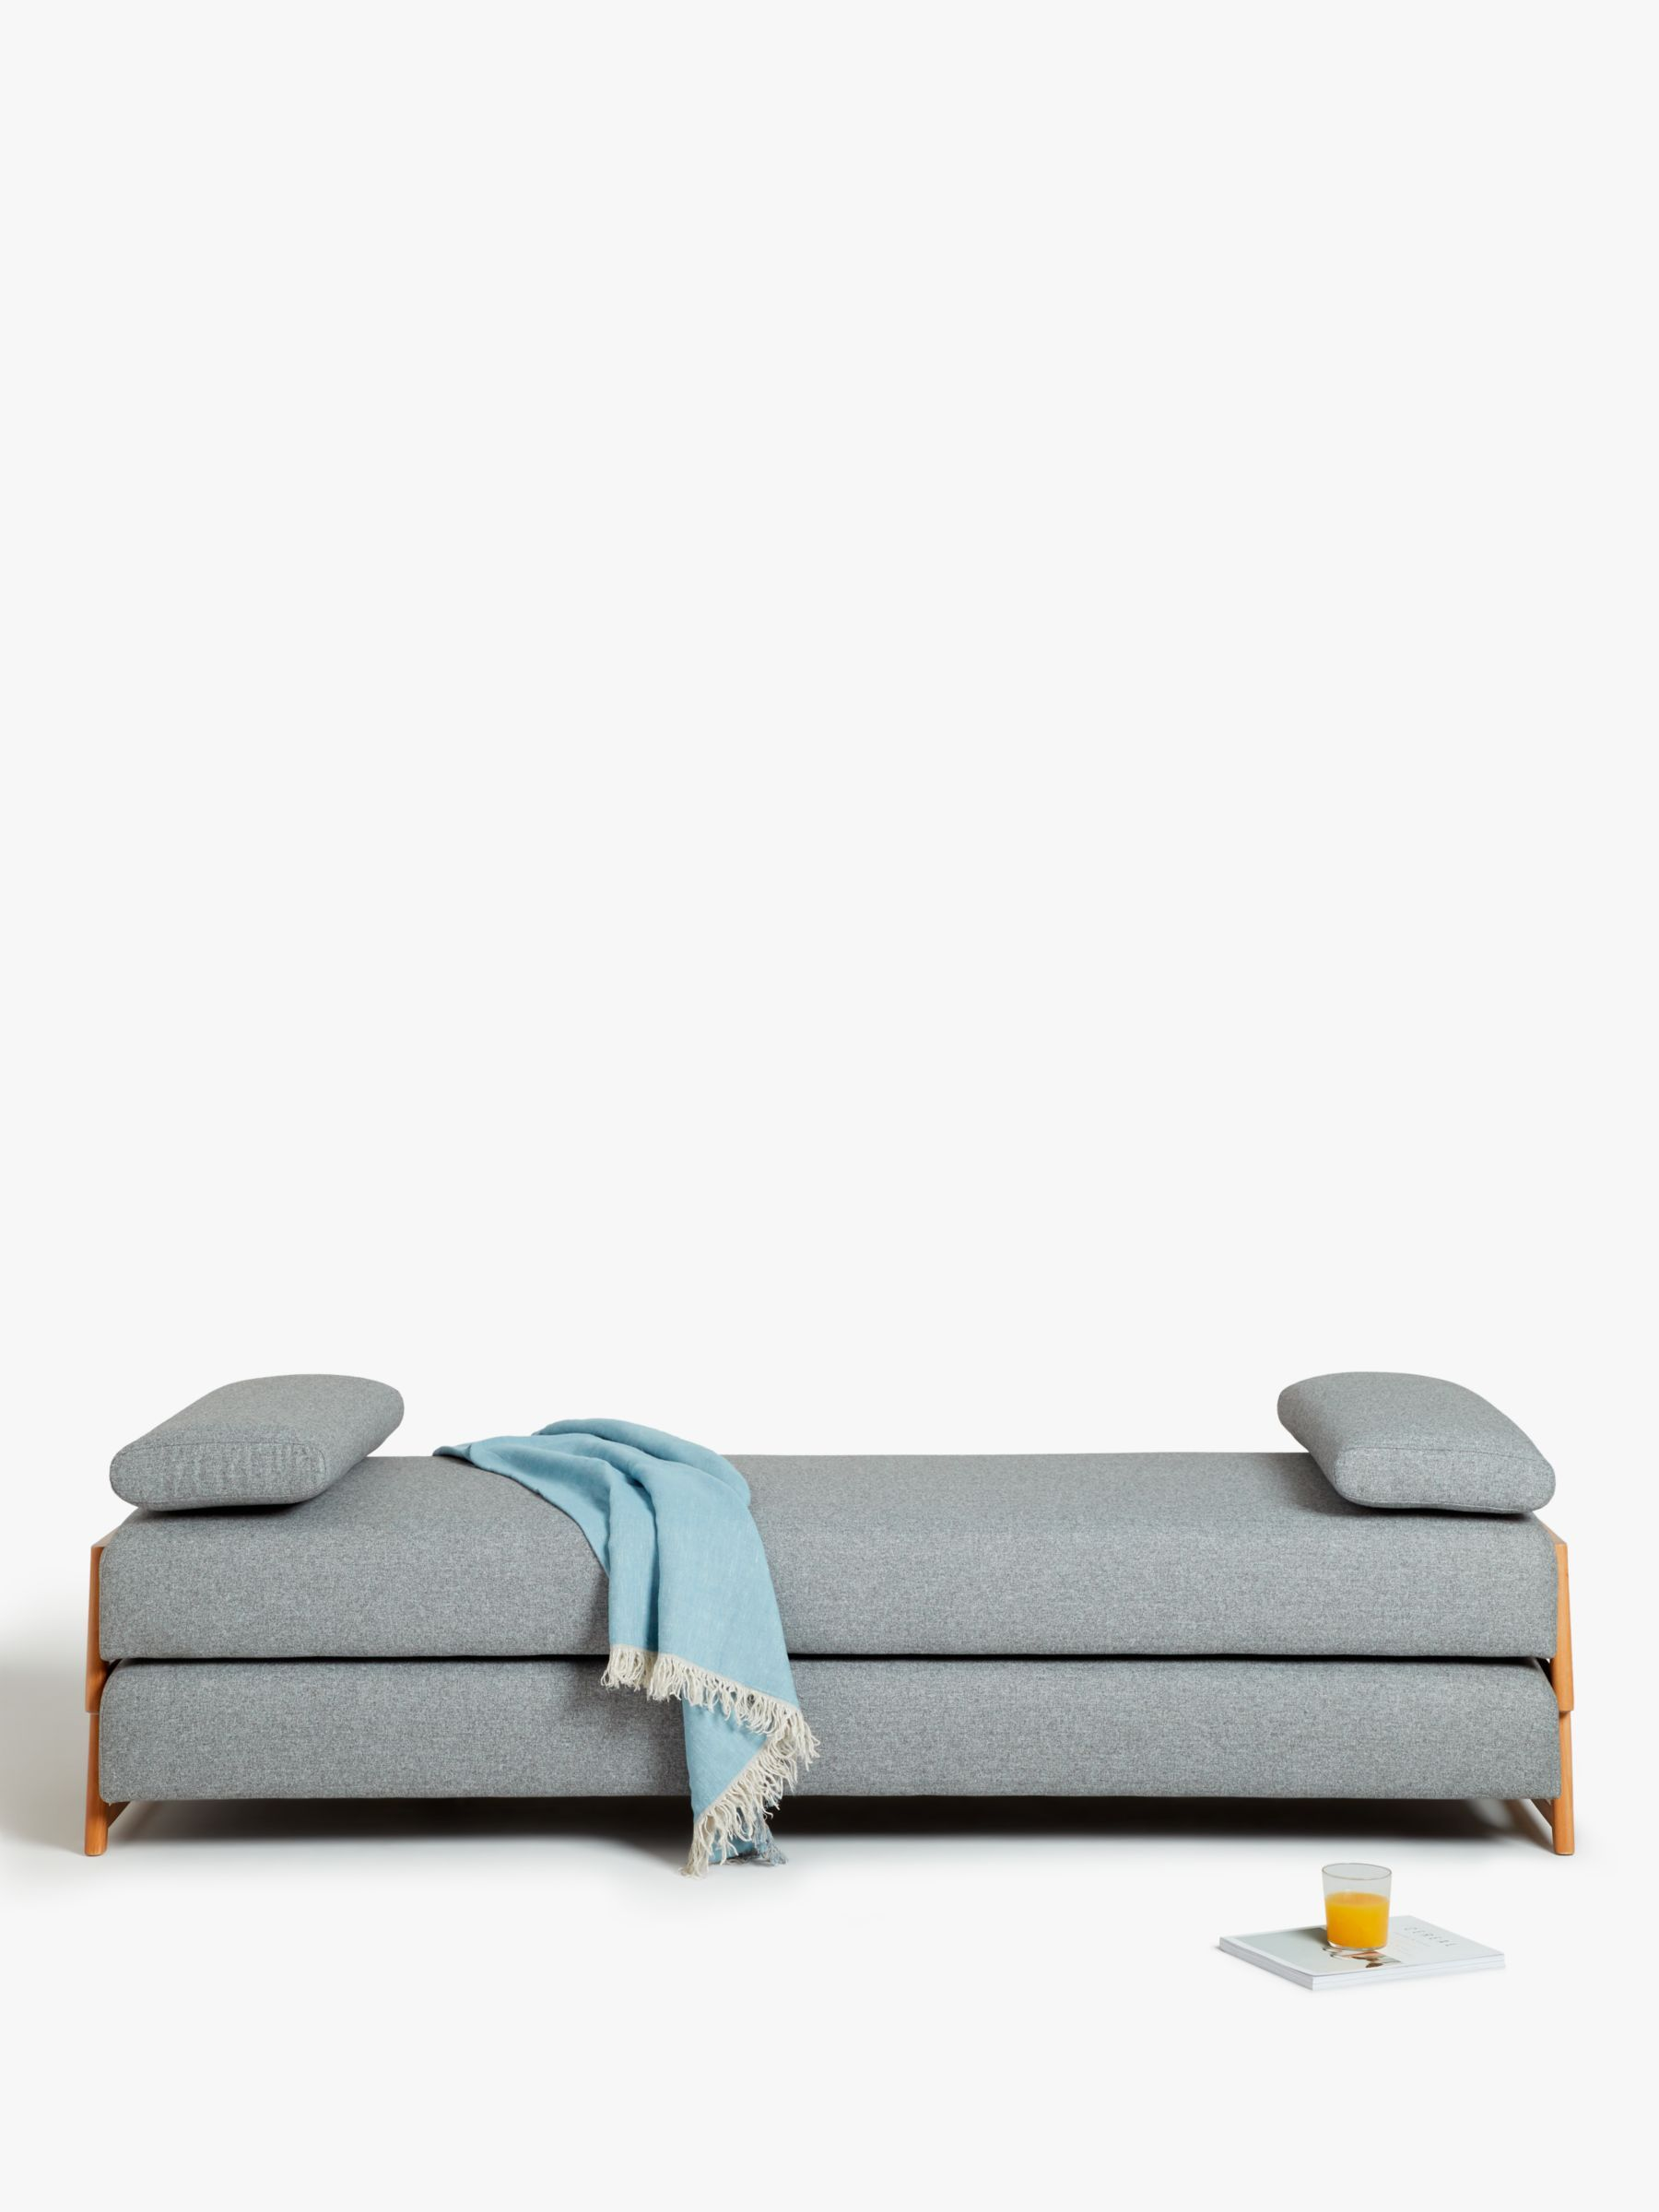 - John Lewis & Partners Duplet Daybed Daybed, Sofa Bed John Lewis